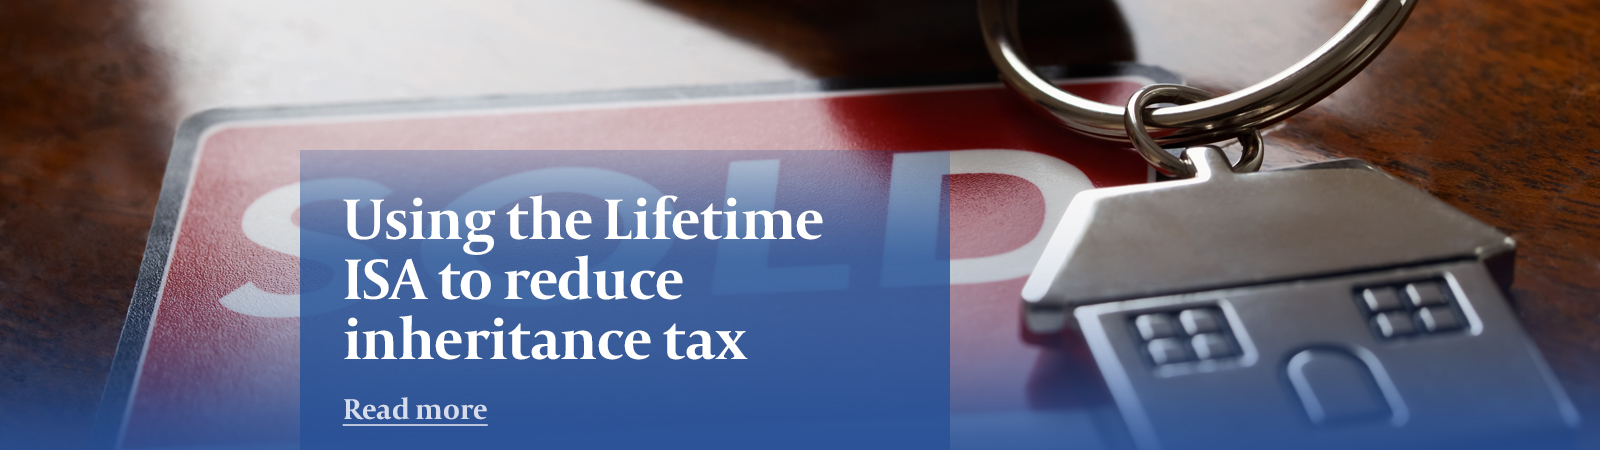 Using the Lifetime ISA to reduce IHT banner